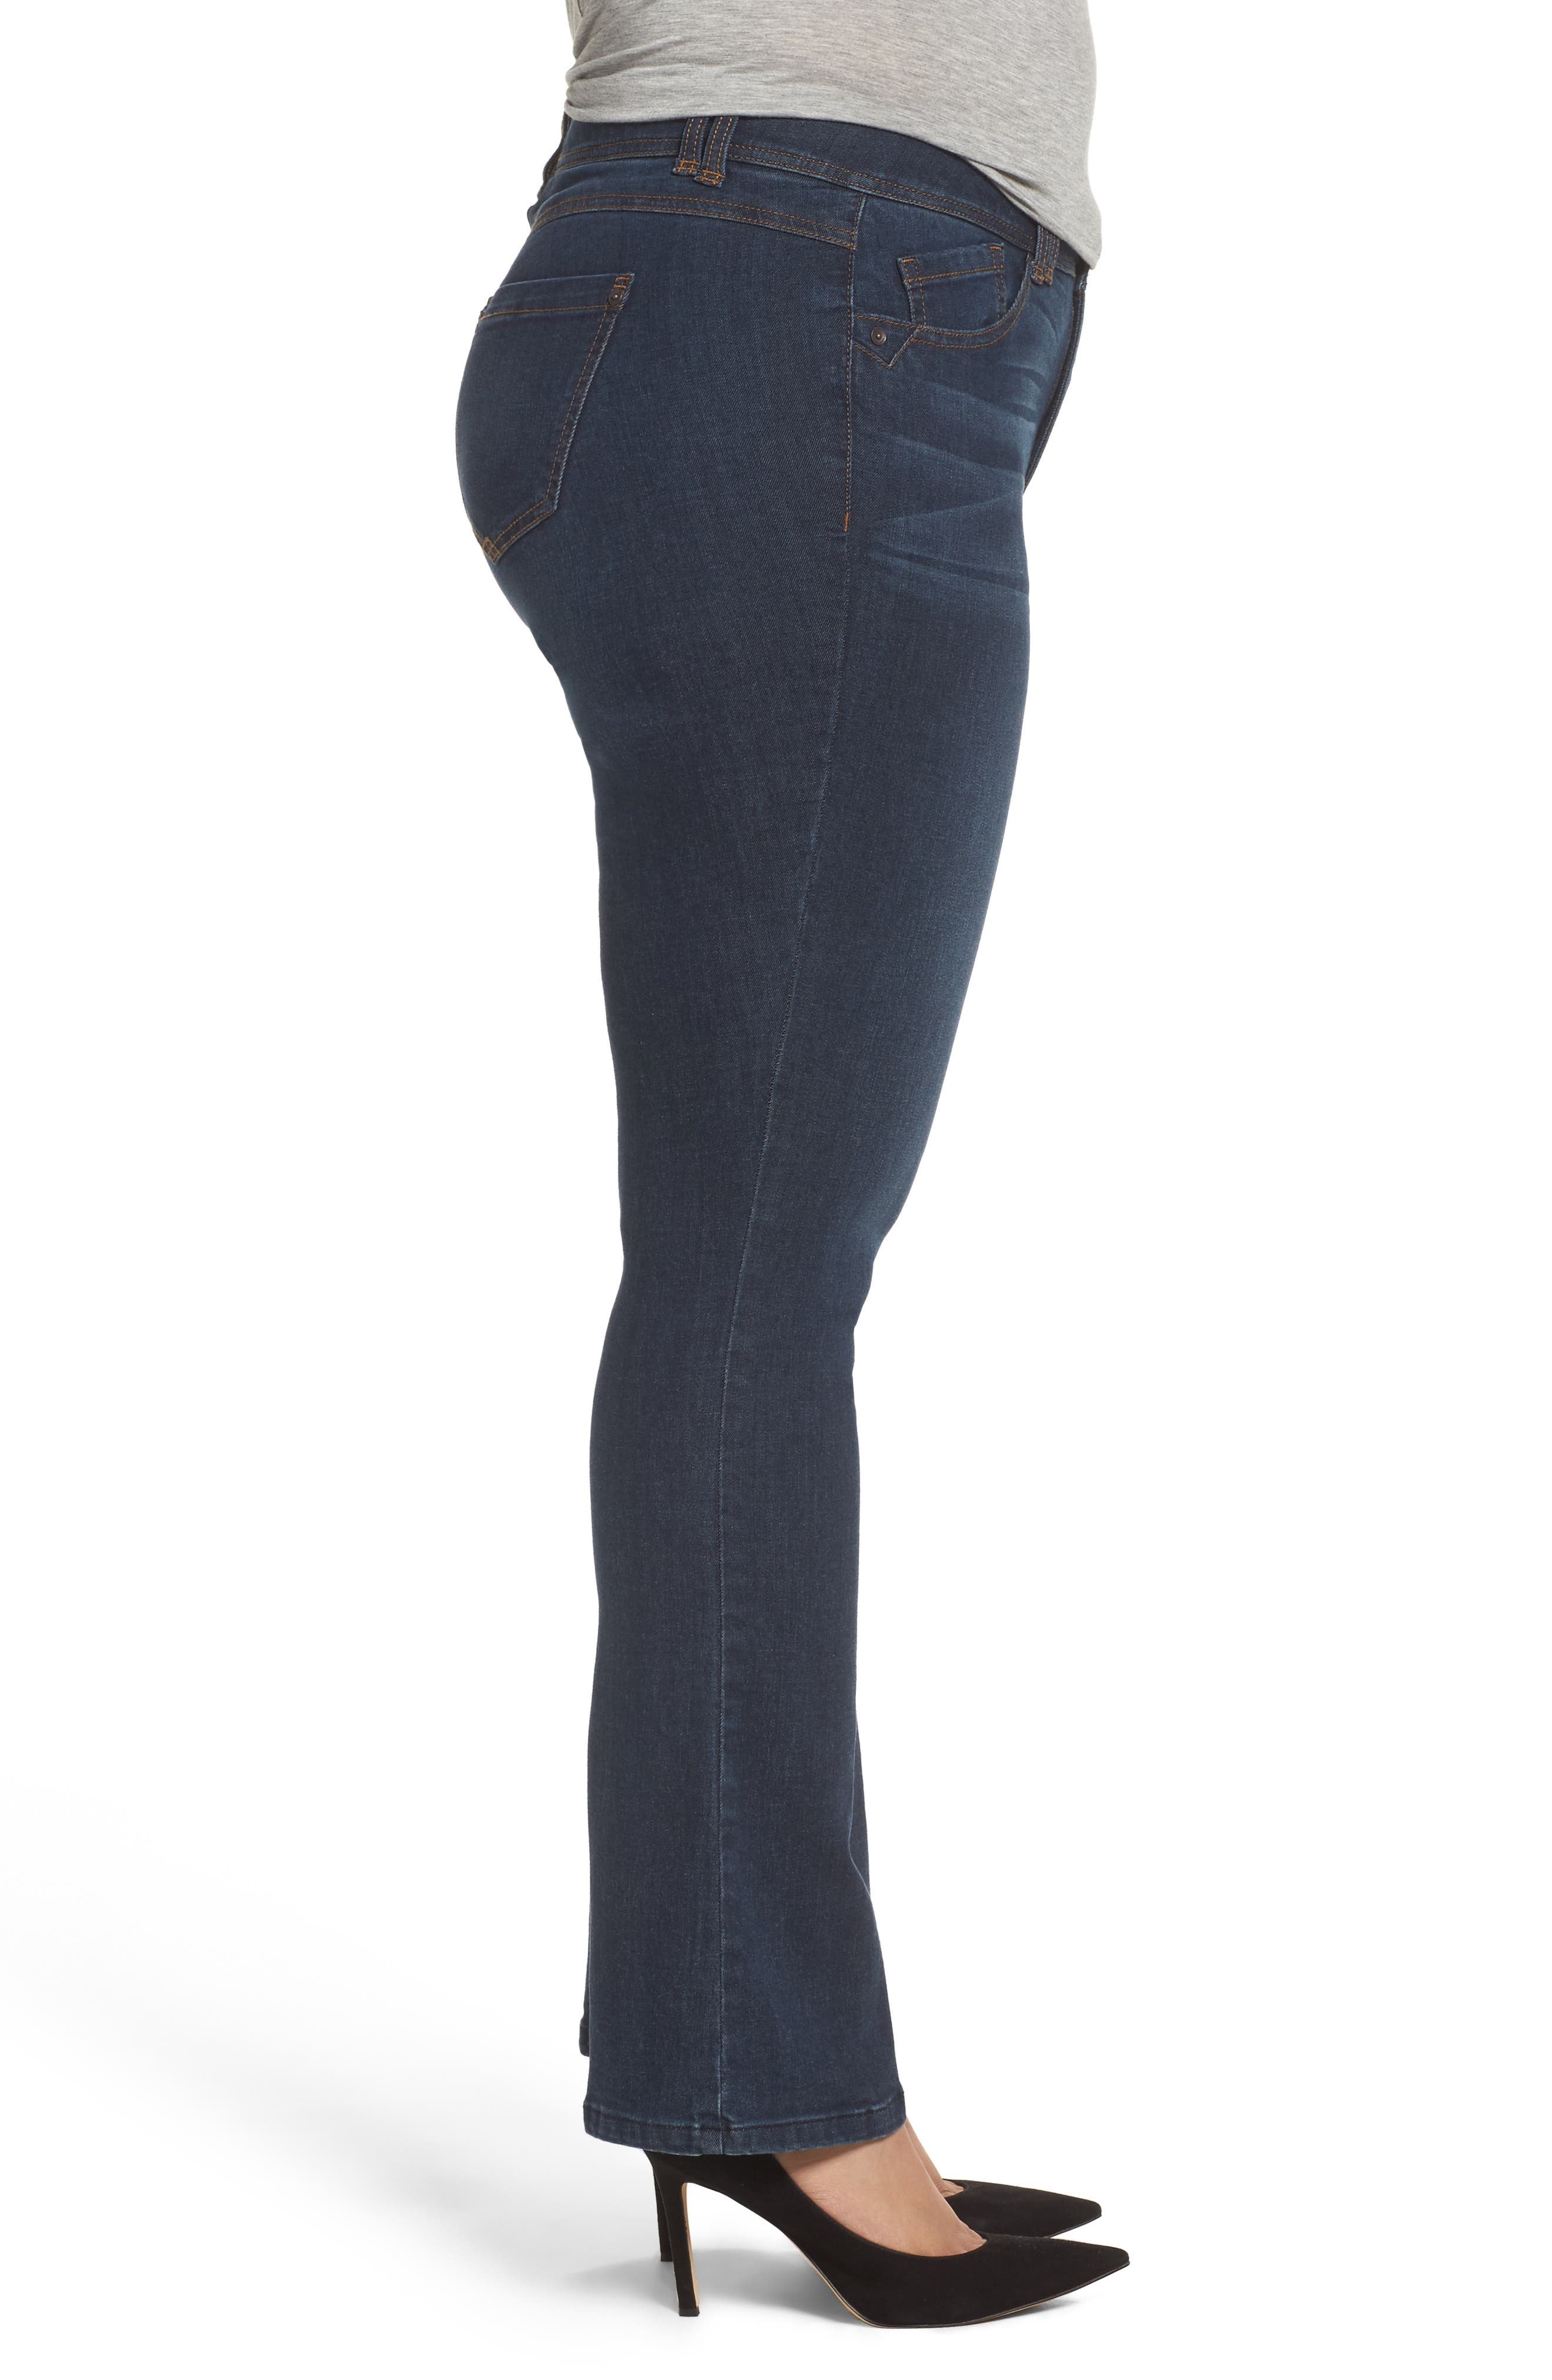 Ab-solution Itty Bitty Bootcut Jeans,                             Alternate thumbnail 3, color,                             420